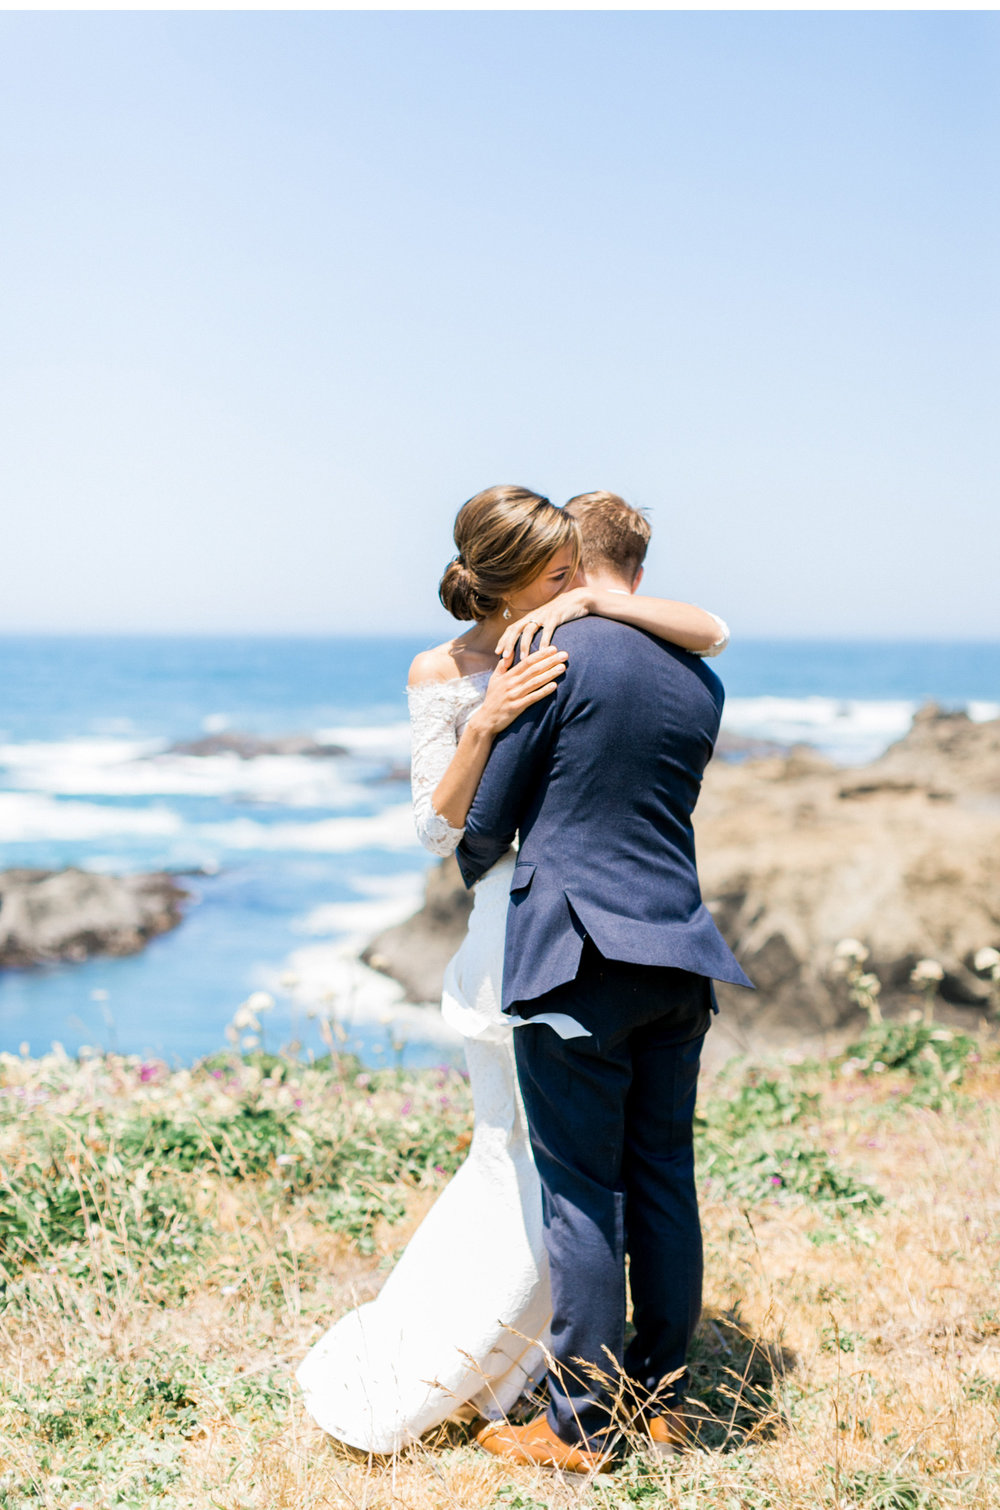 Mendocino-wedding-photographer-natalie-schutt-photography_11.jpg